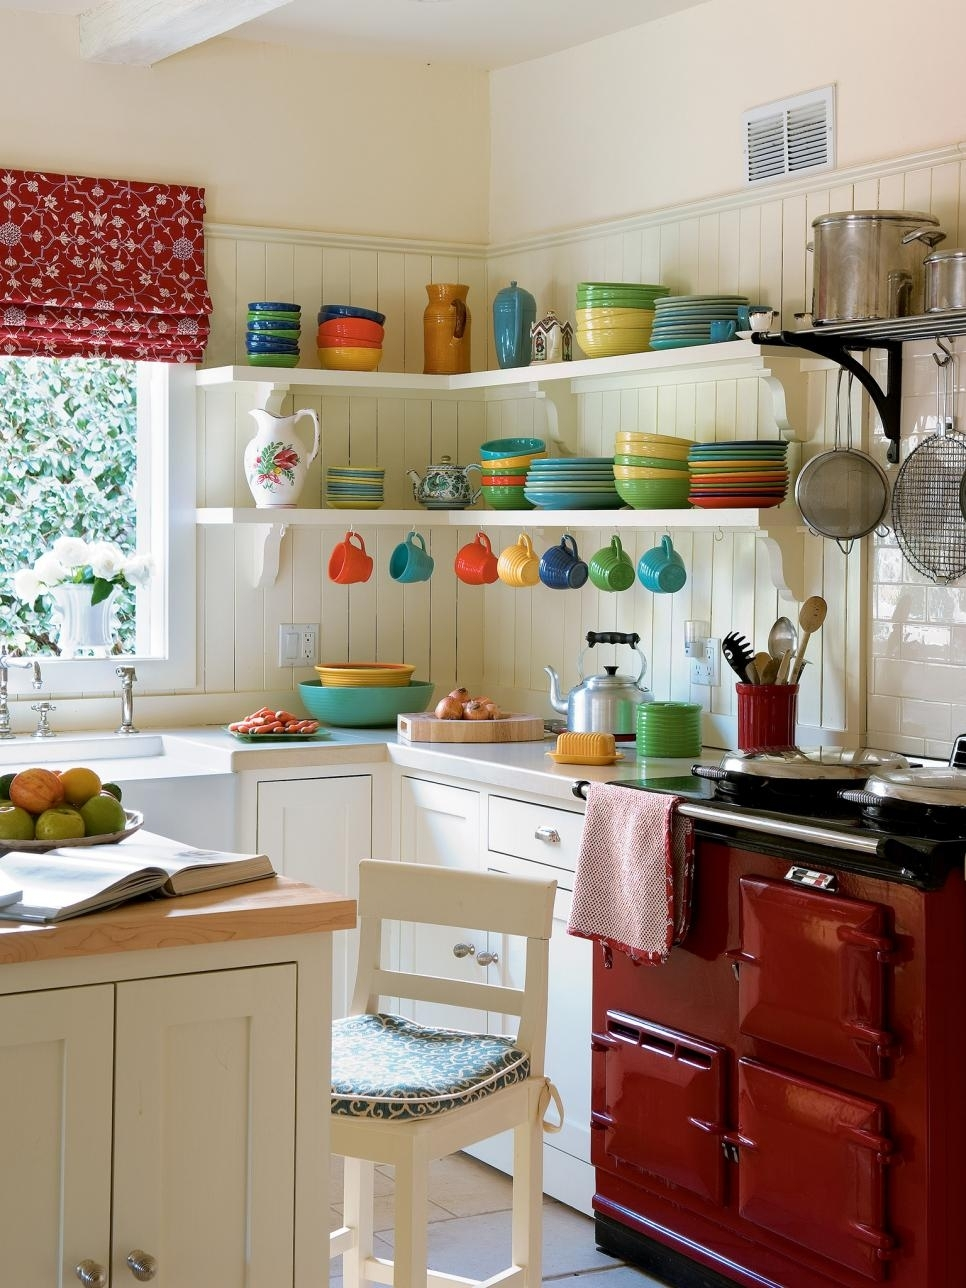 10 Cute Kitchen Cabinet Ideas For Small Kitchens %name